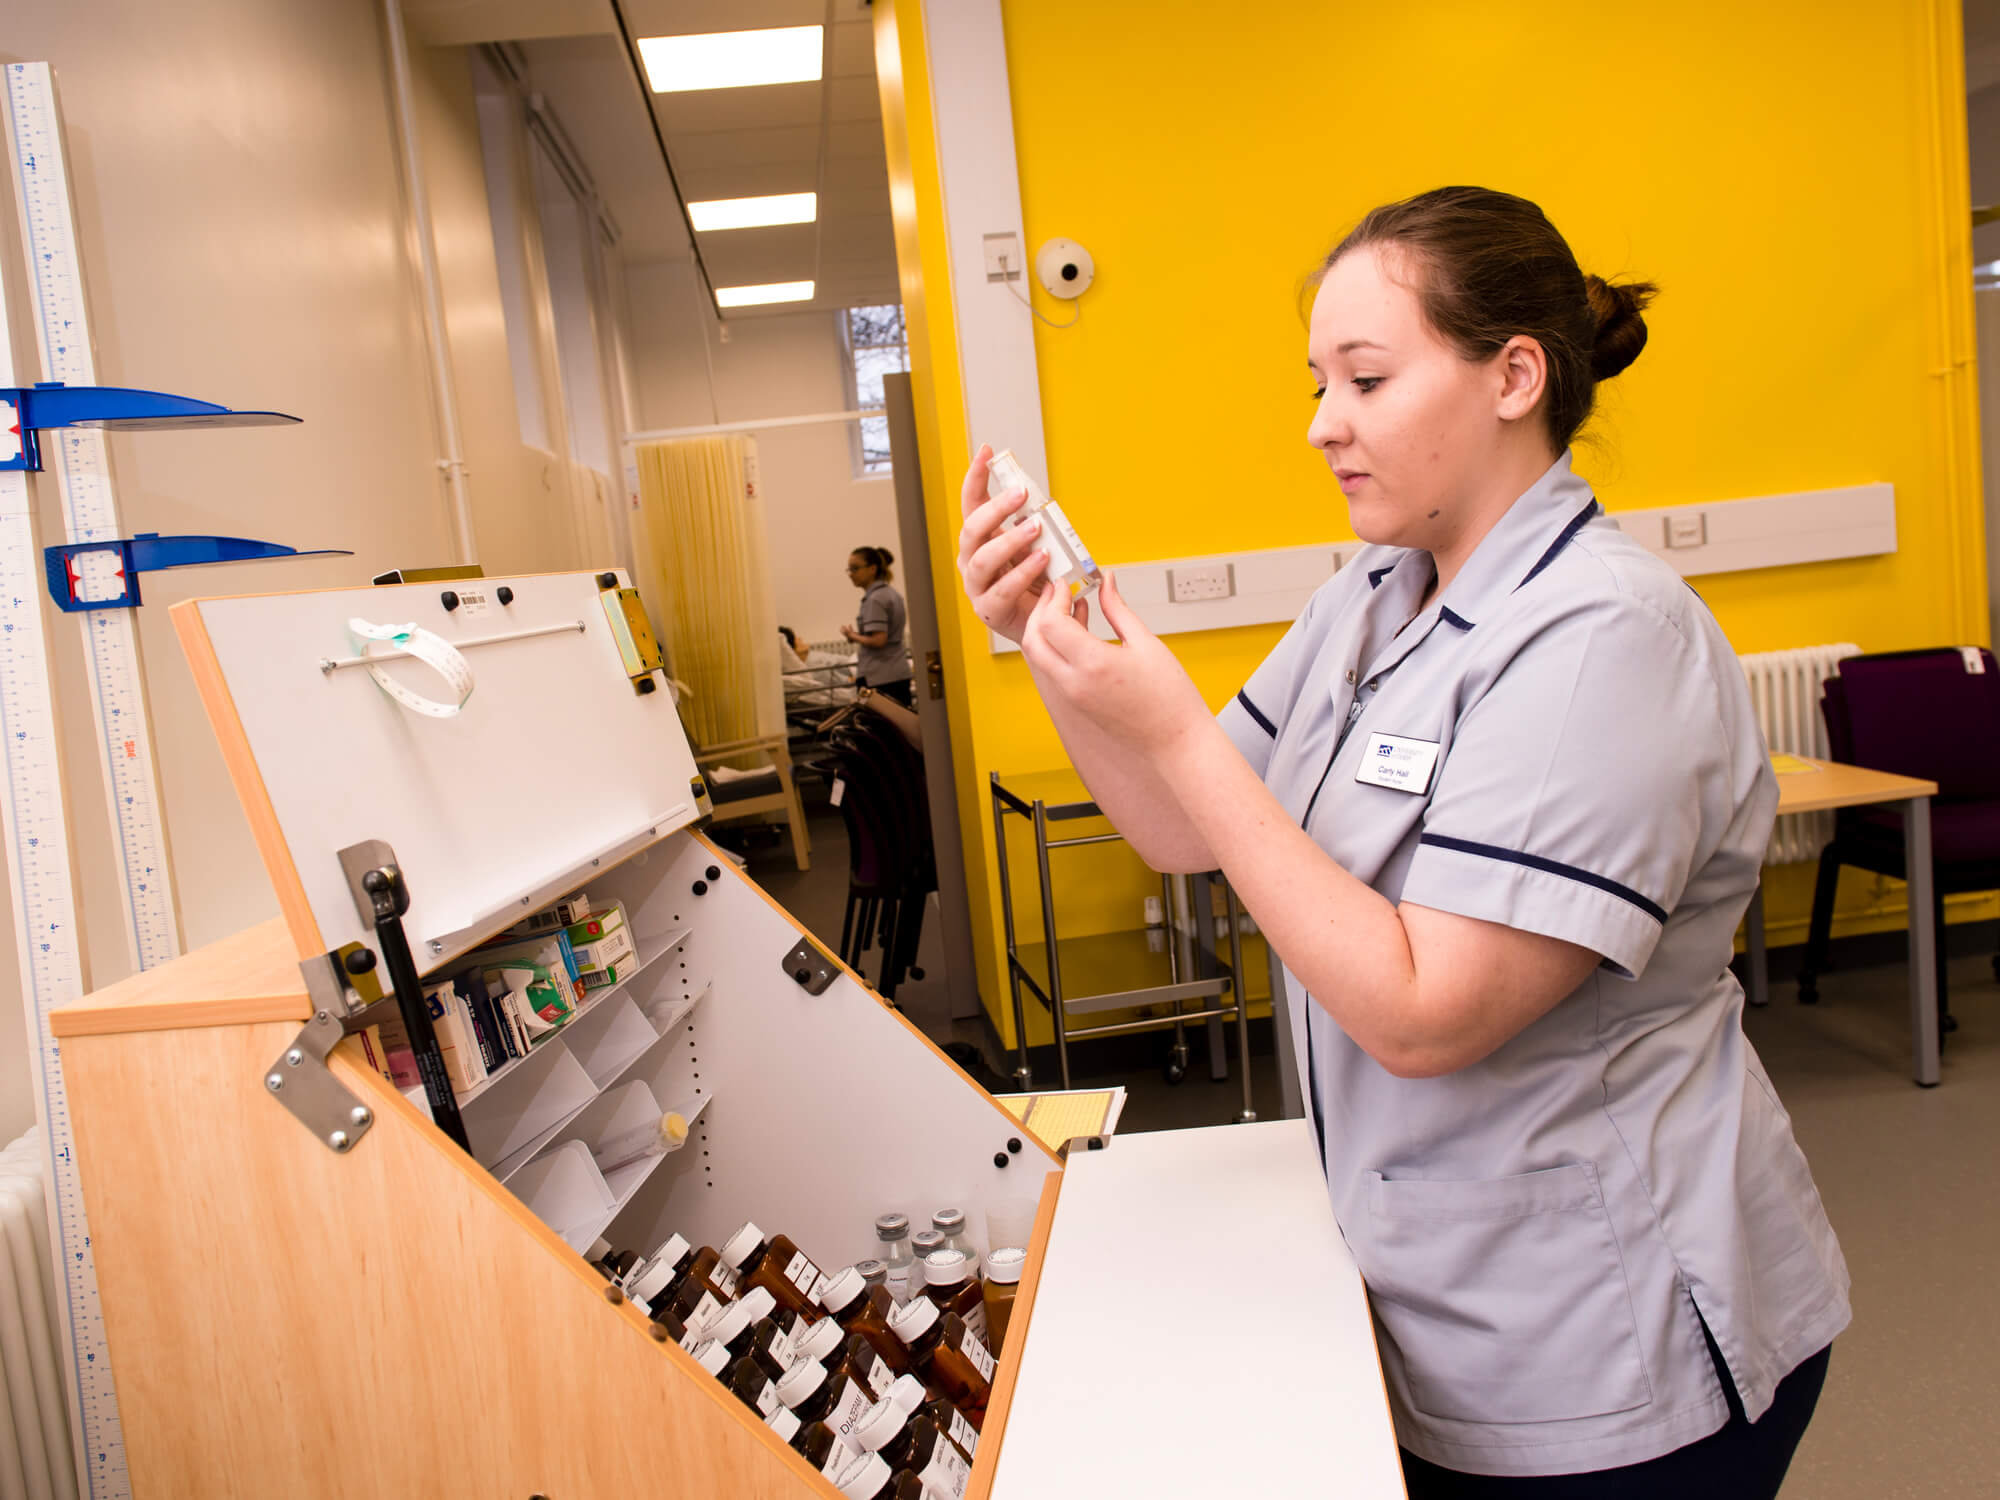 A nurse looks at a bottle of medicine from a cabinet in front of a bright yellow wall.